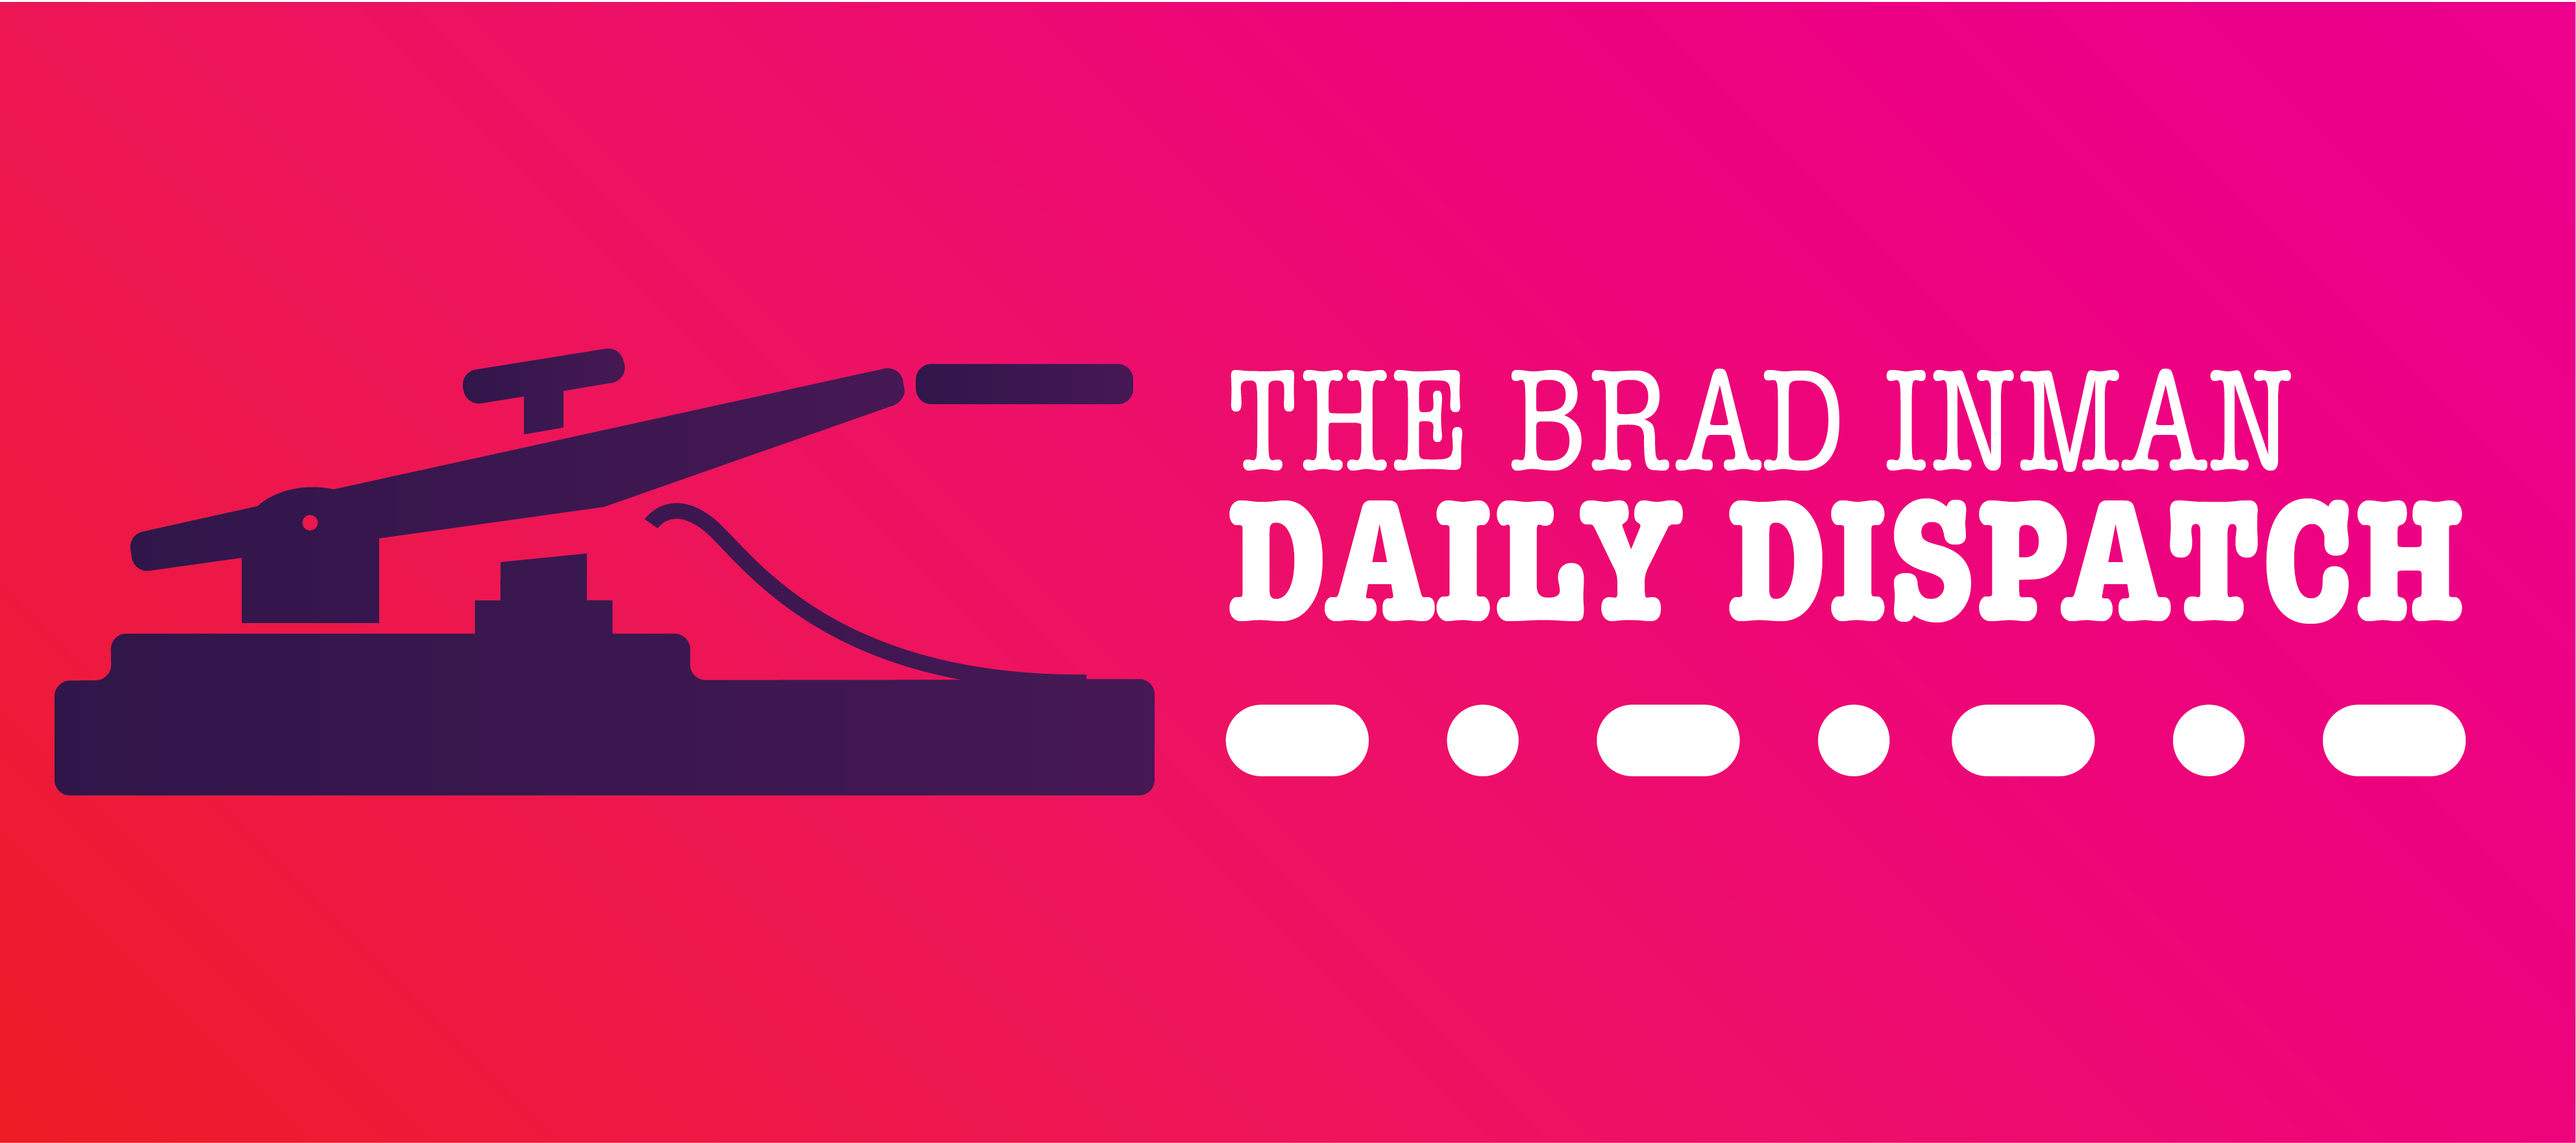 Daily Dispatch: Brad Inman with Glenn Sanford